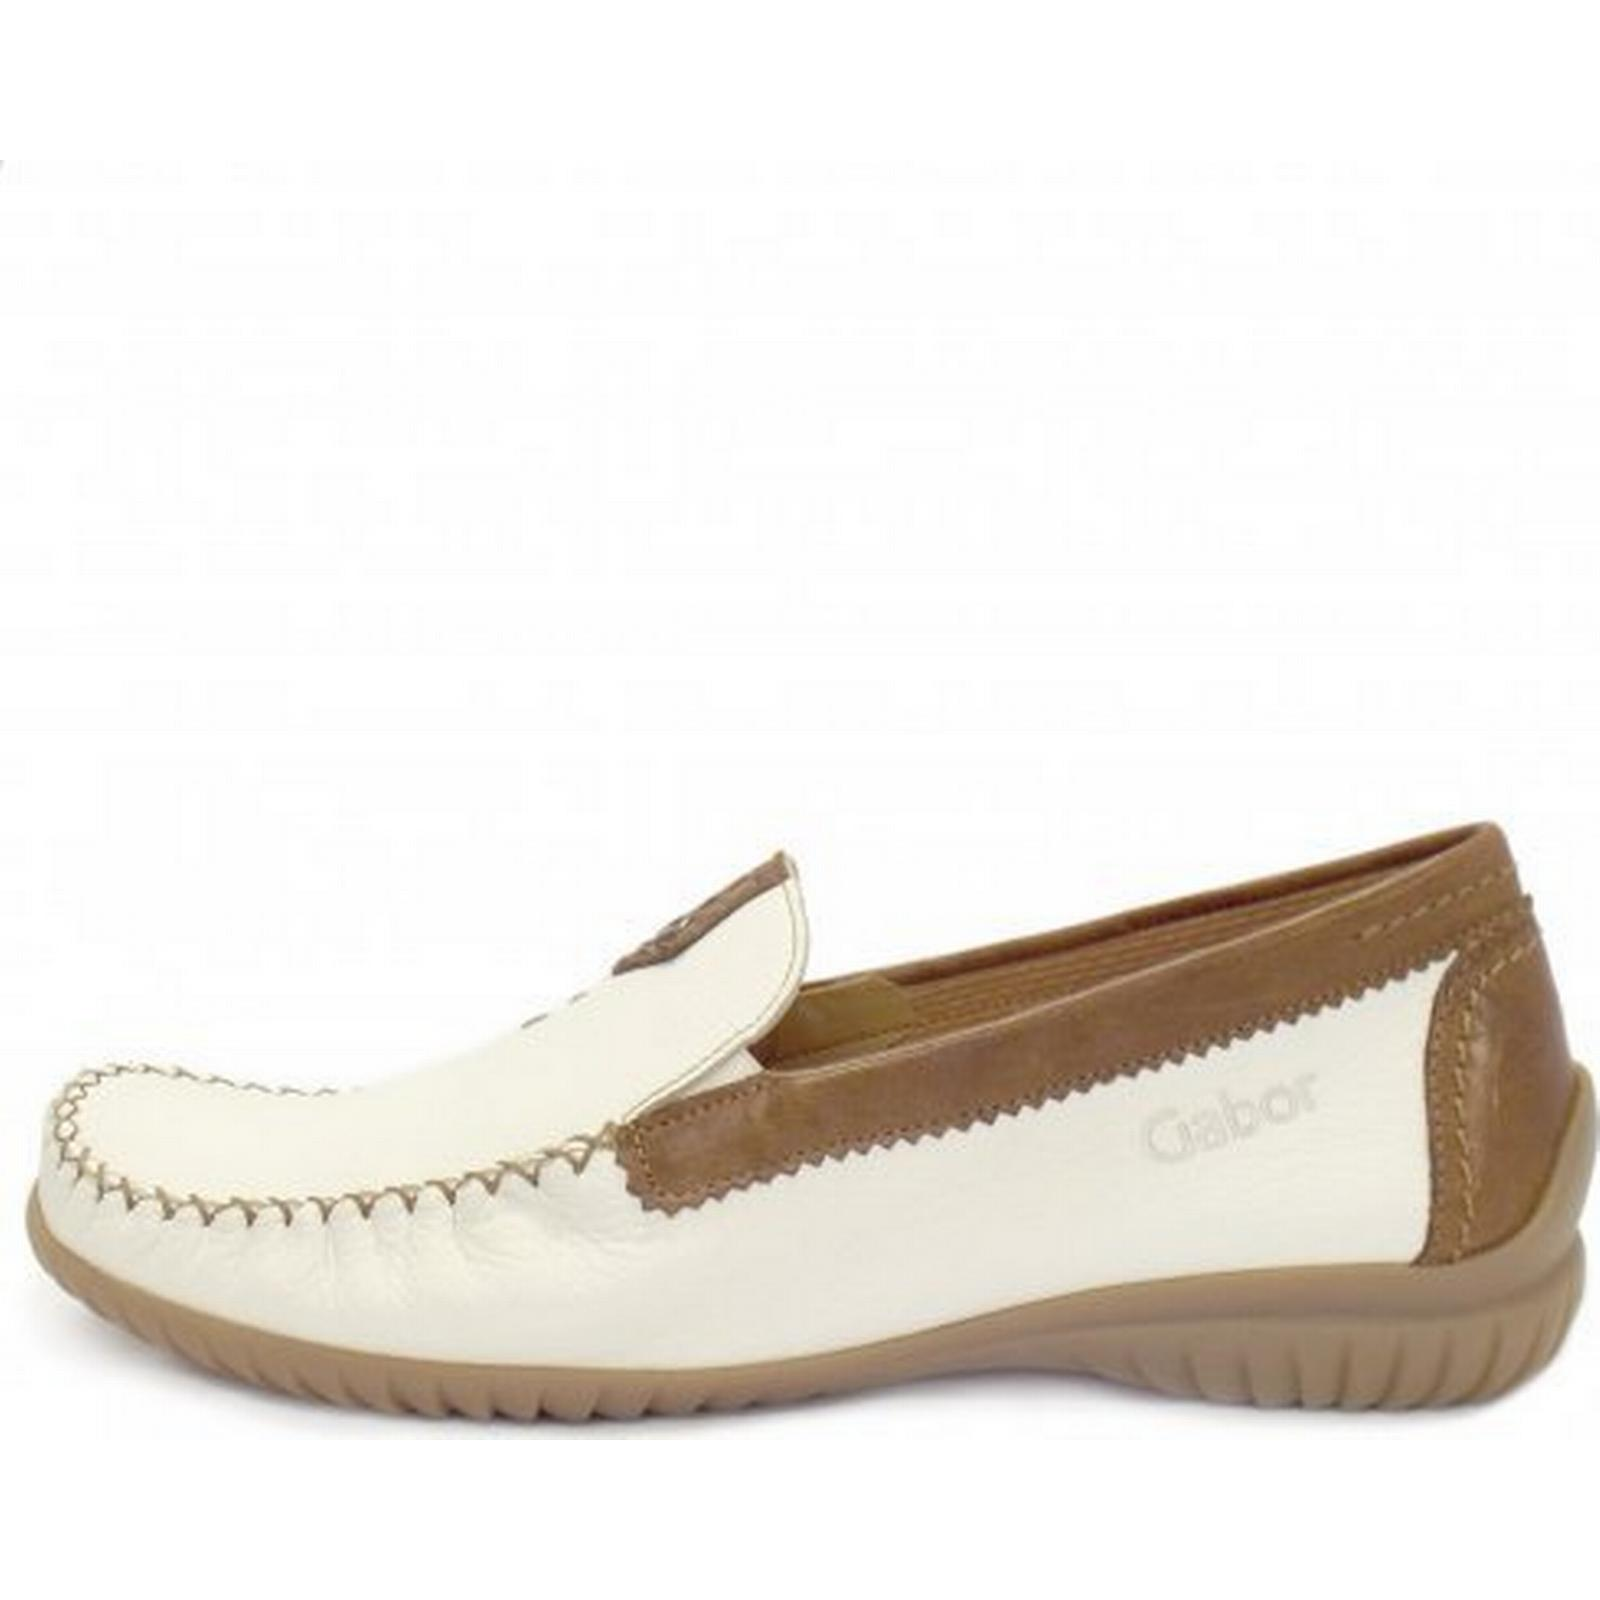 Gabor California Ladies Wide Fit Fit Wide Loafer in White Size: 4.5, Colour: WH 0f9bc2